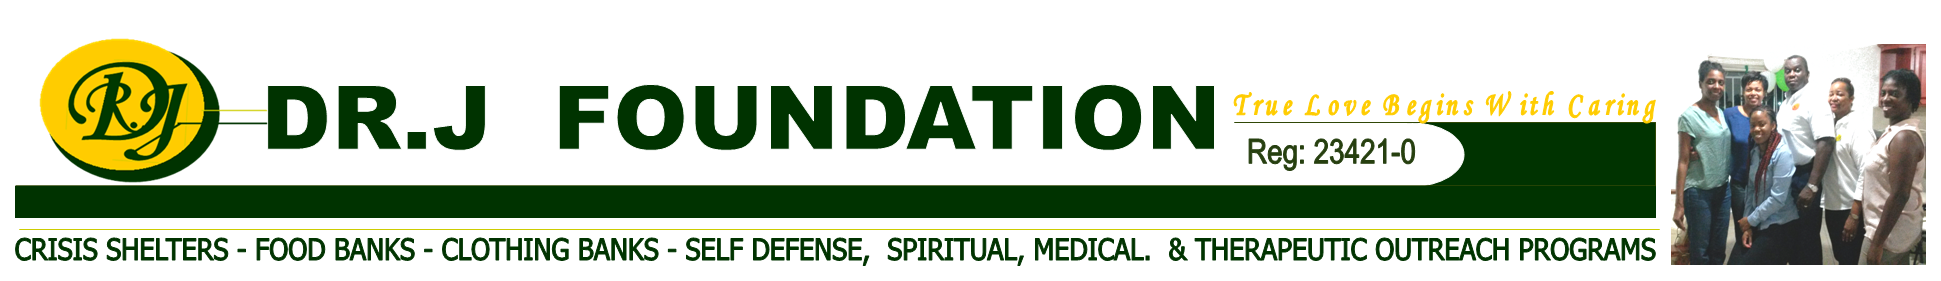 DR.J FOUNDATION